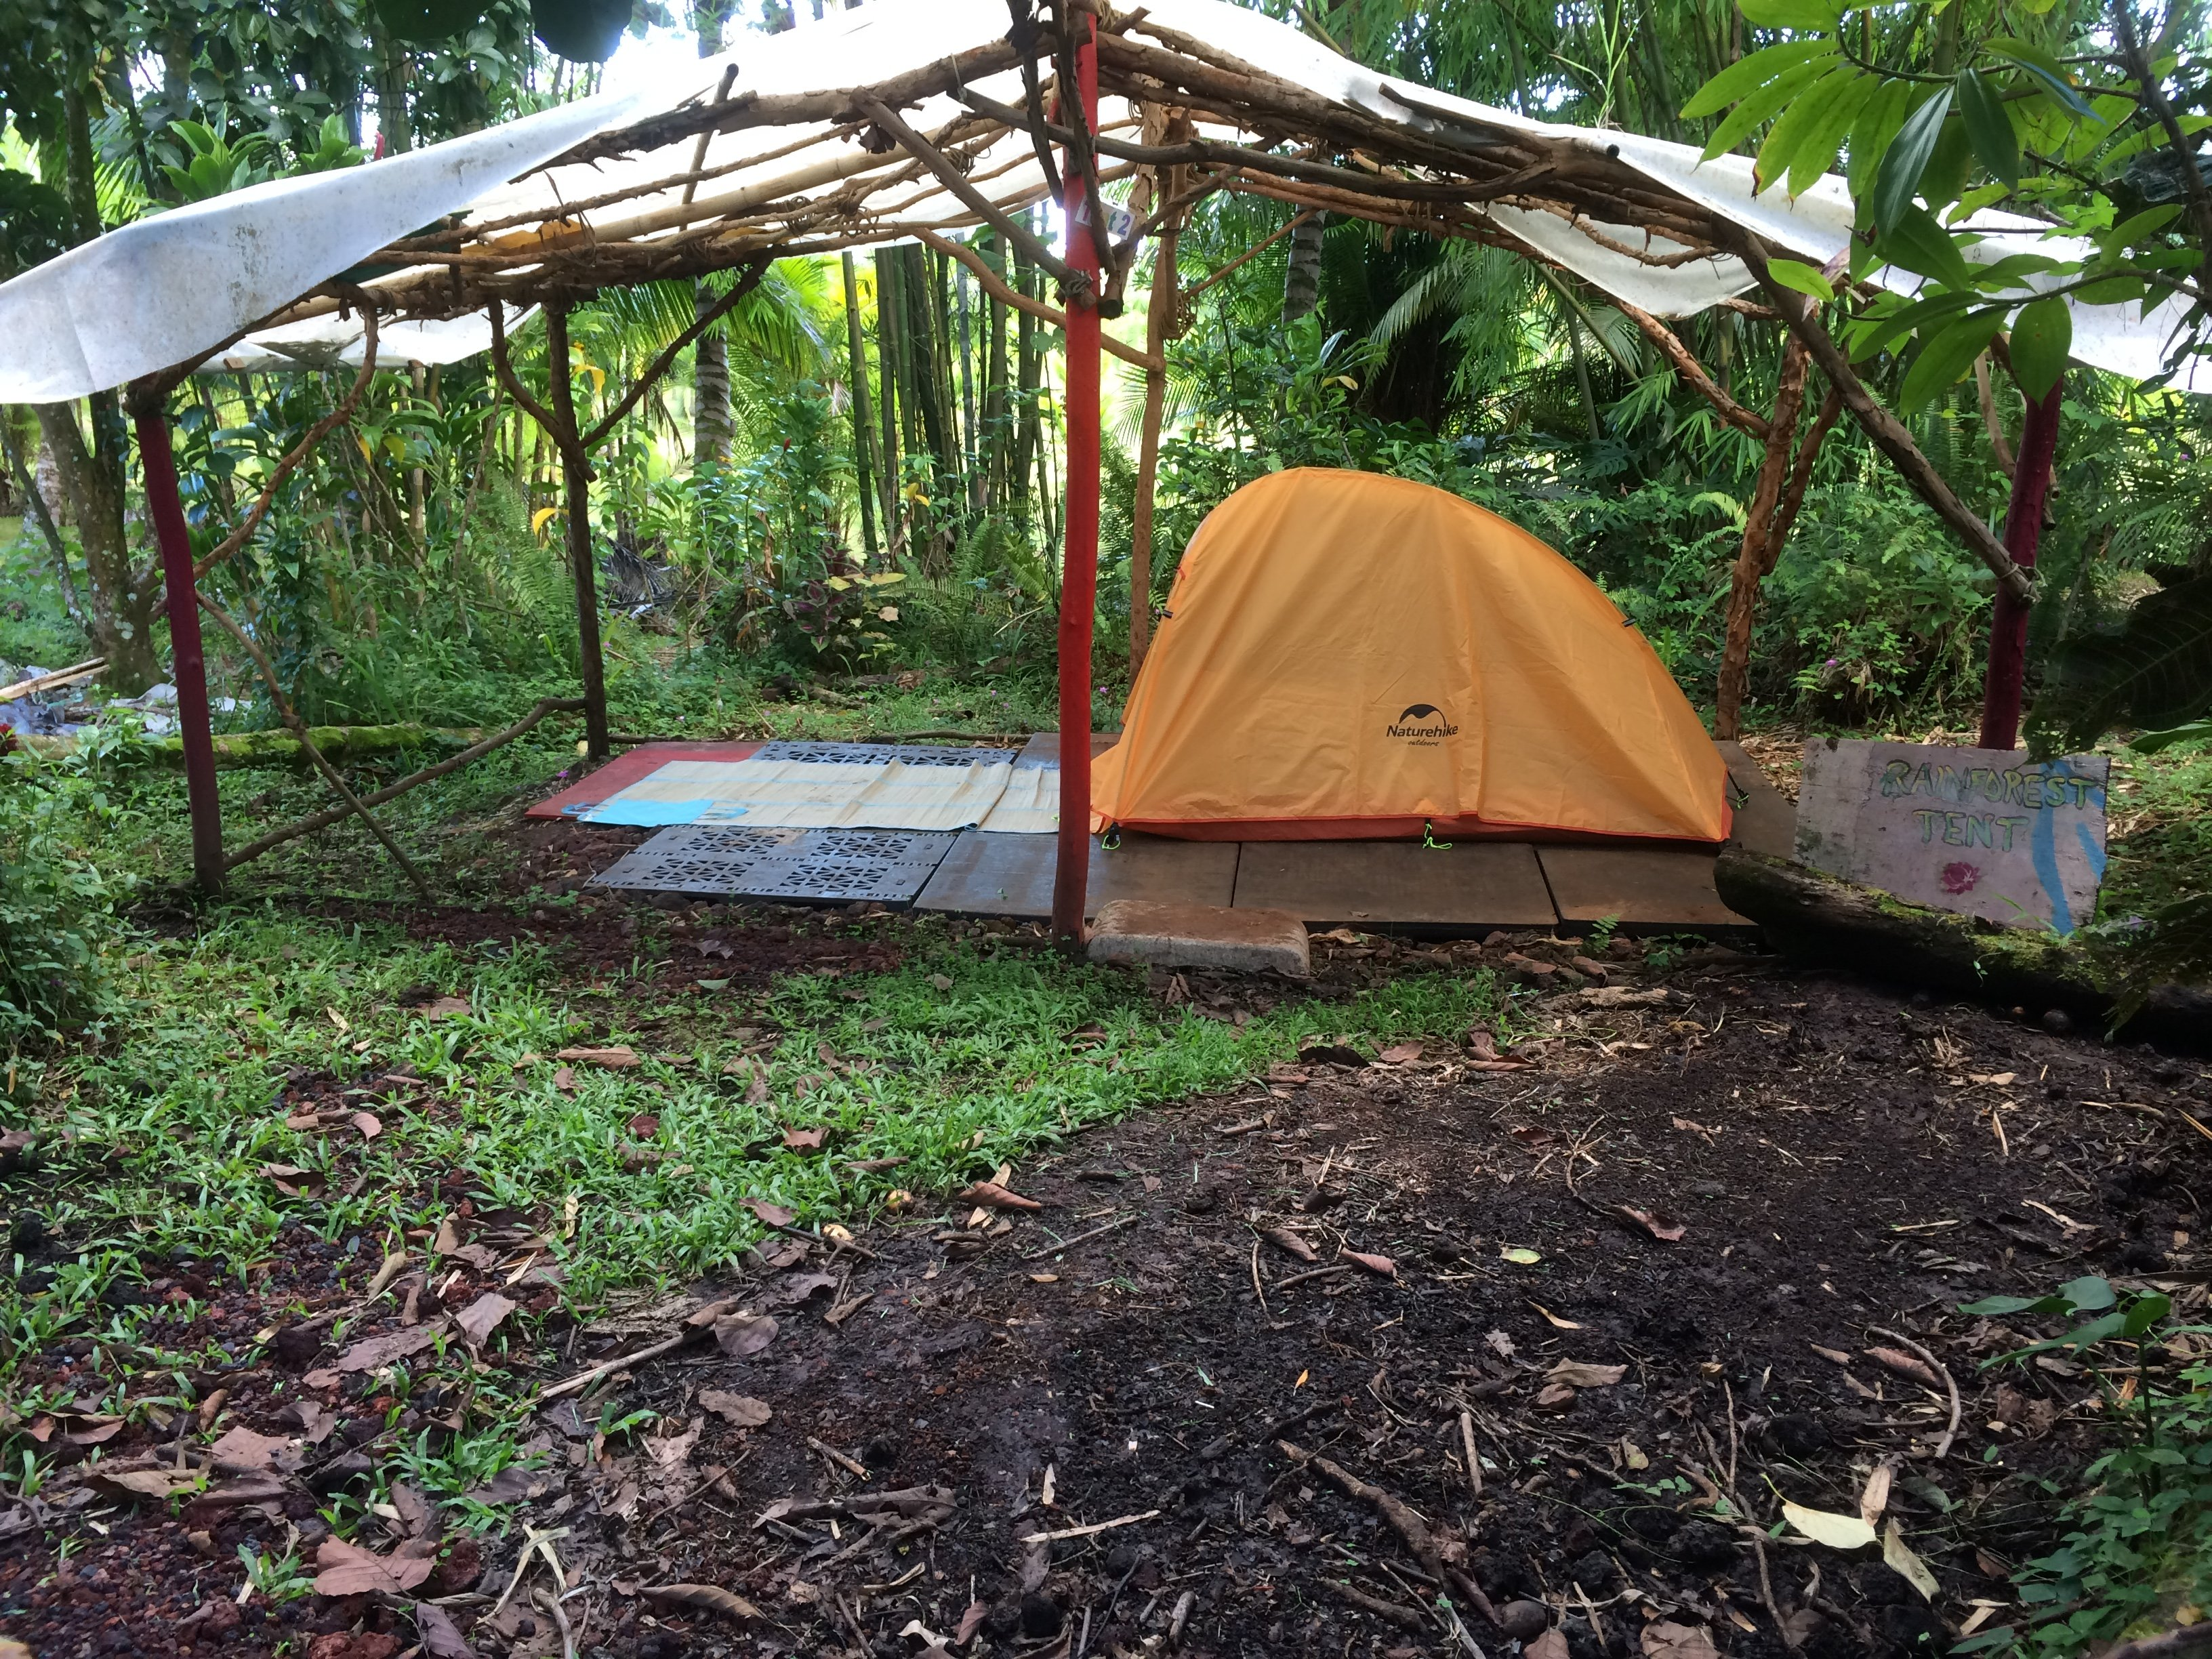 Rainforest C&ing Private Tent & Hedonisia Hawaii Campground: Private Camping in Hawaii